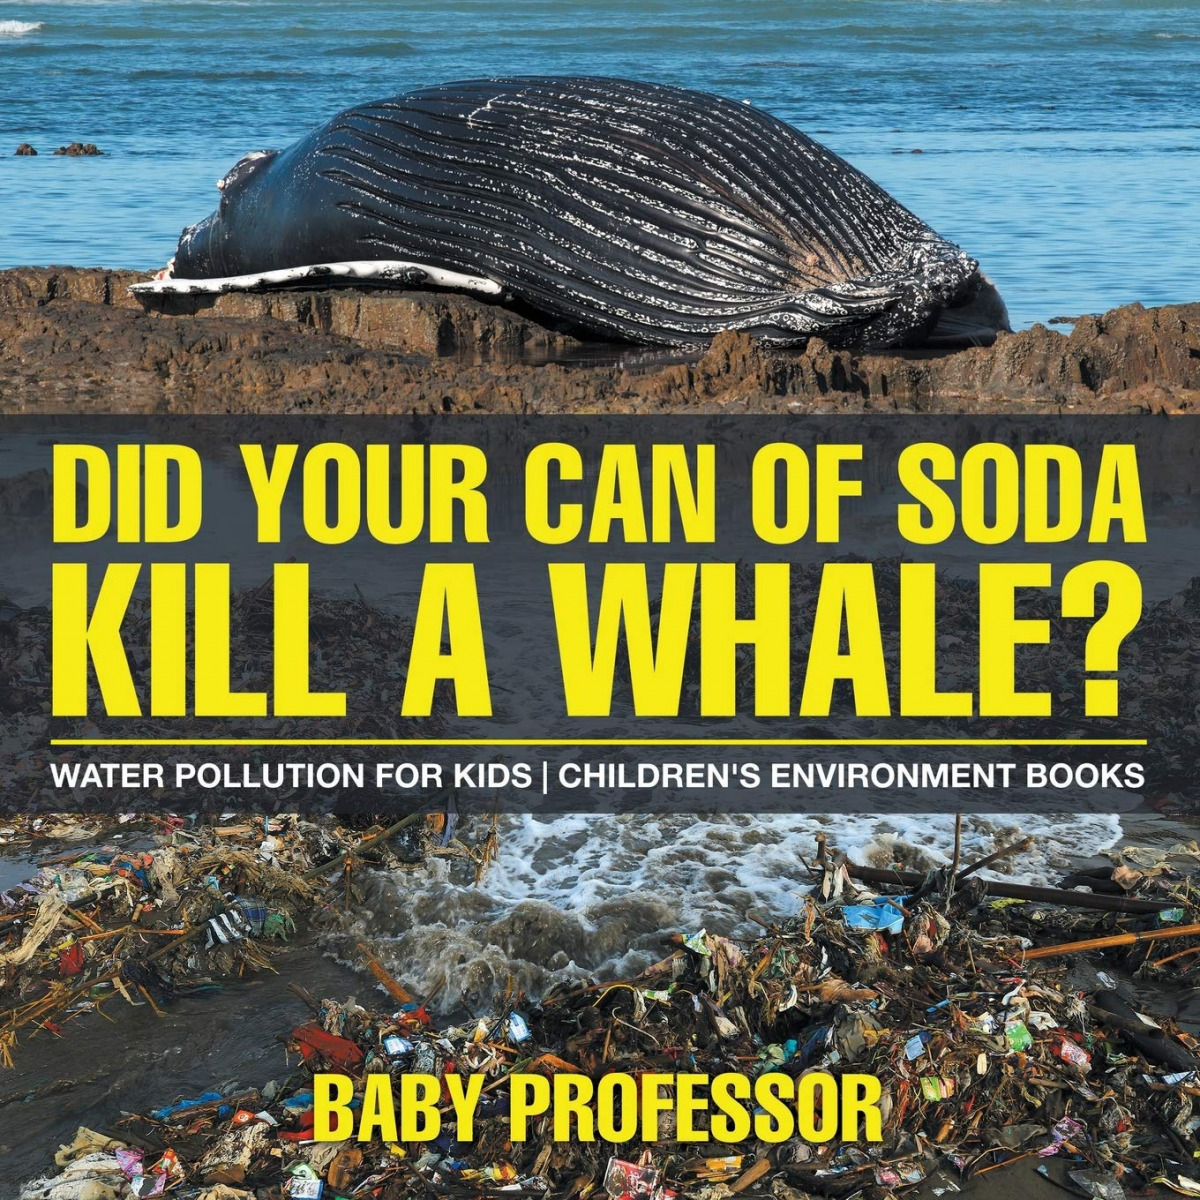 Did your can of soda kill a whale?